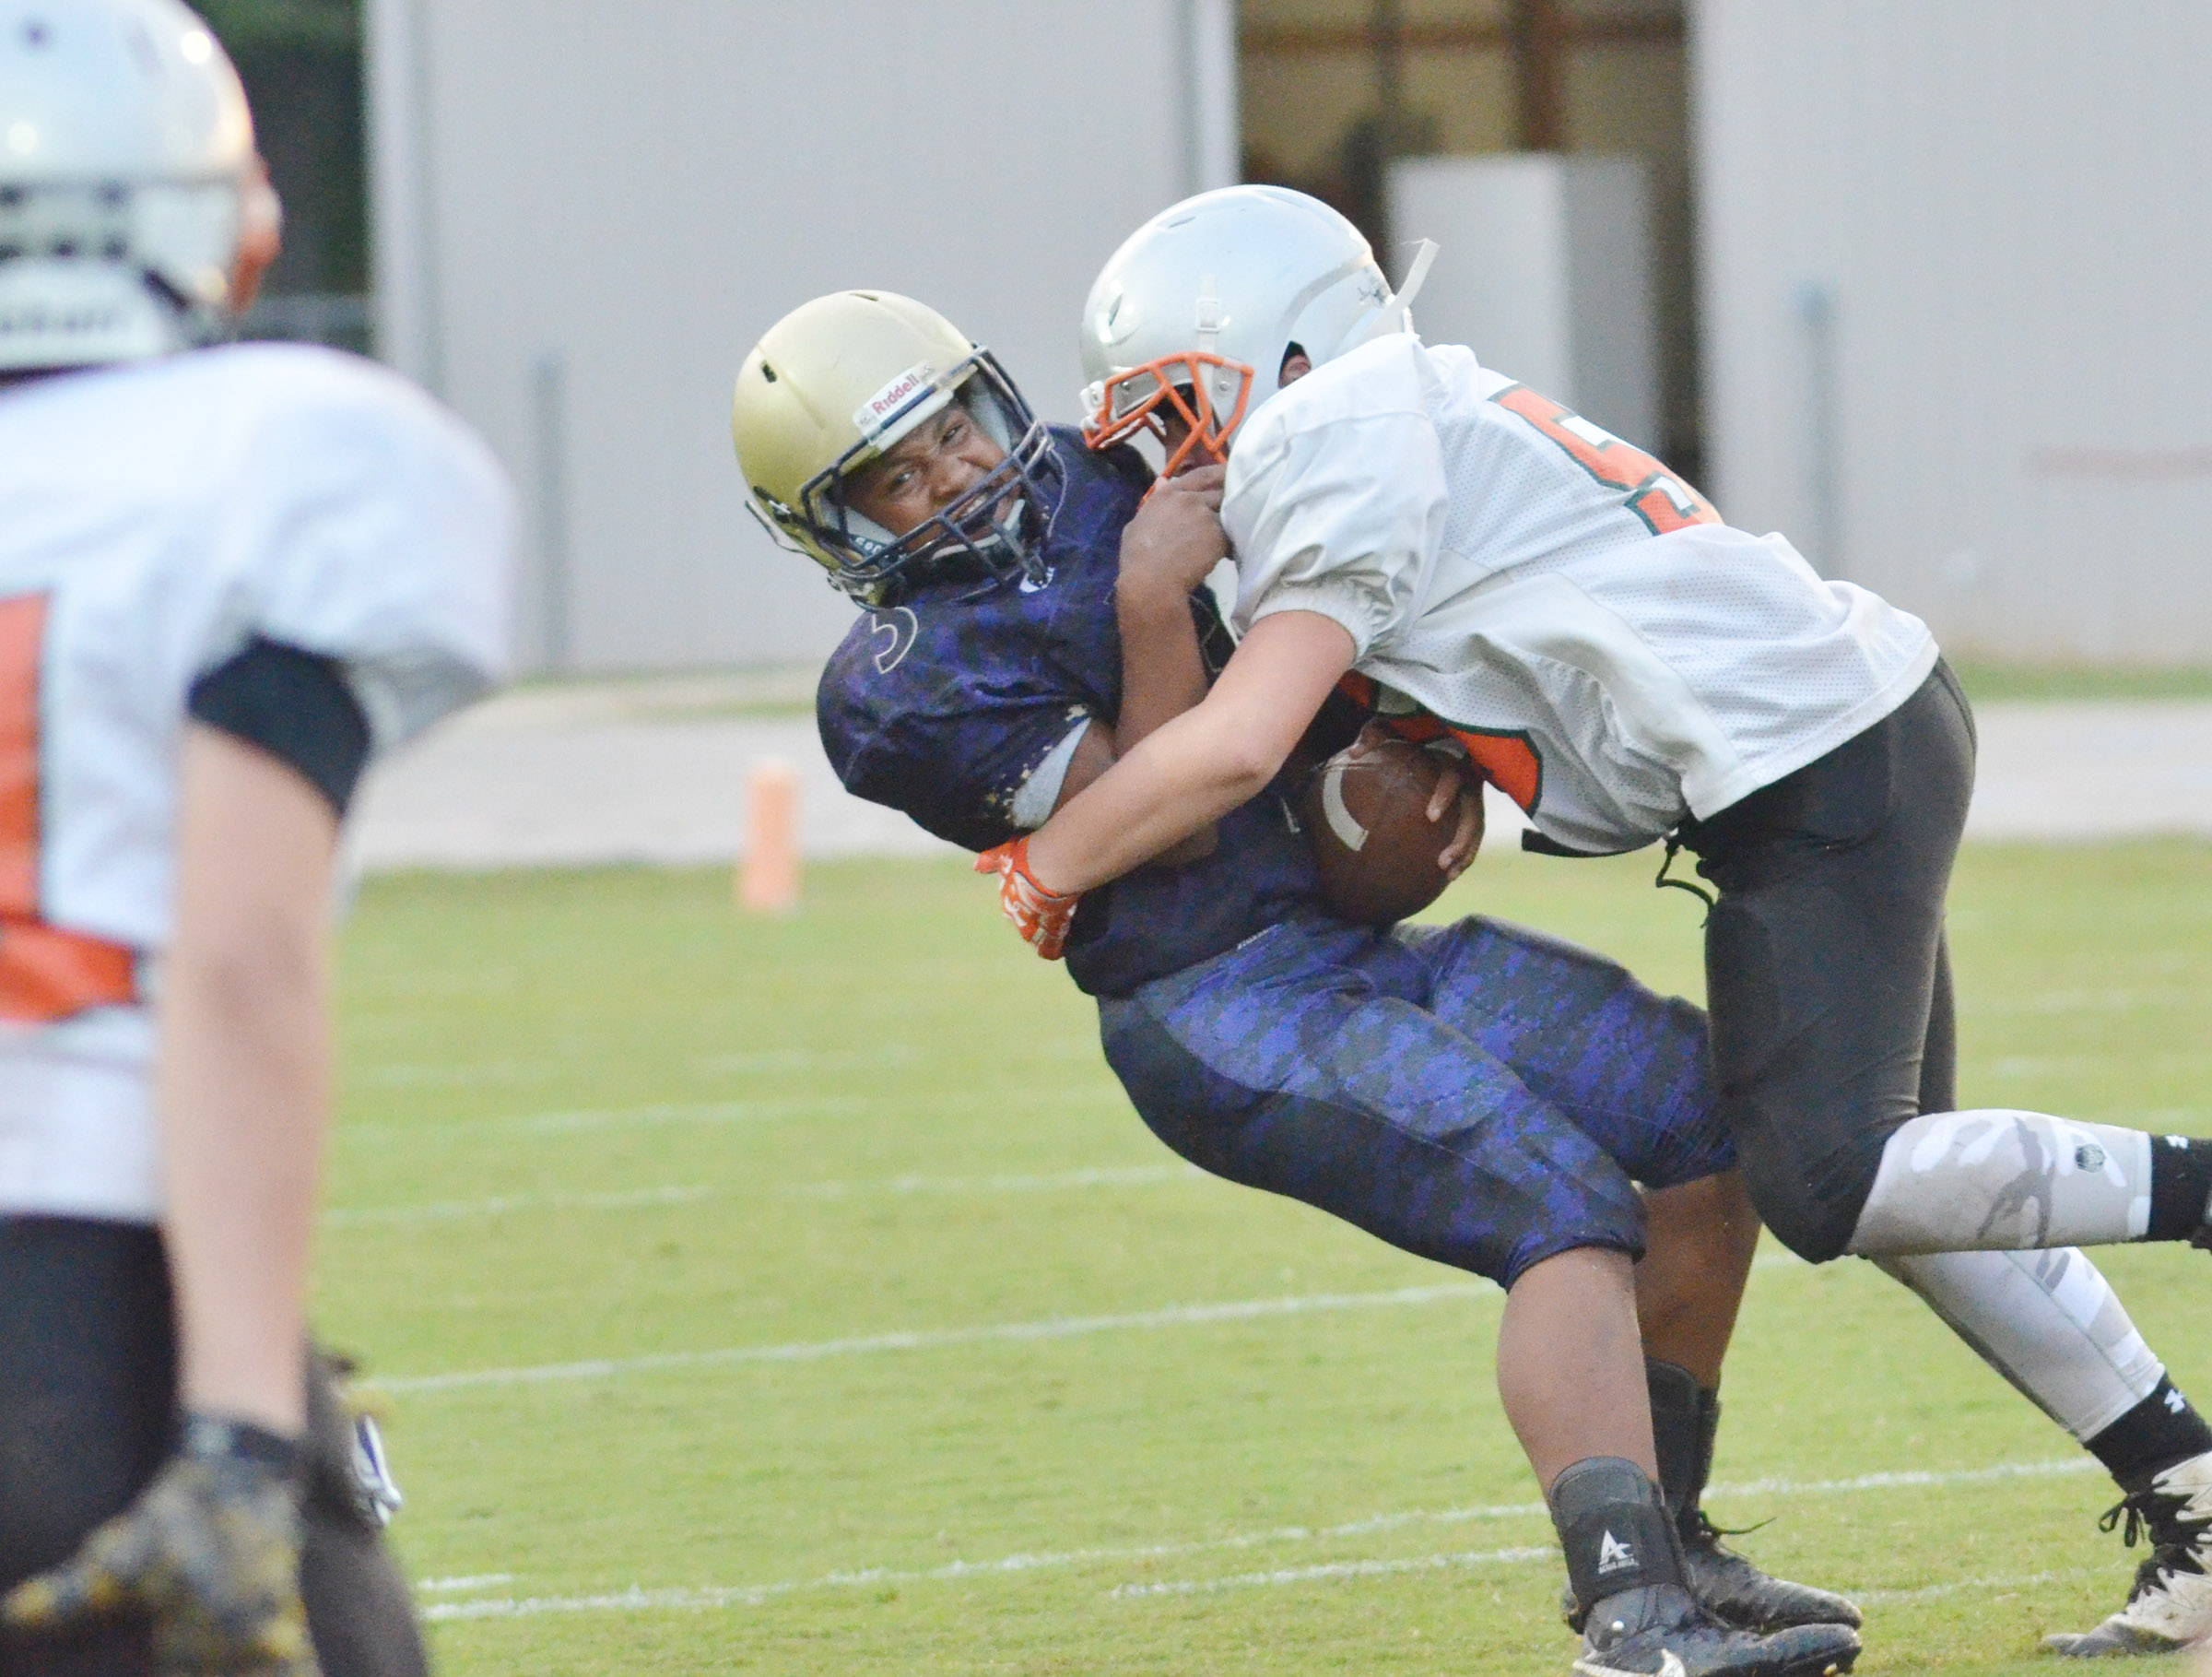 CMS seventh-grader Deondre Weathers is tackled.